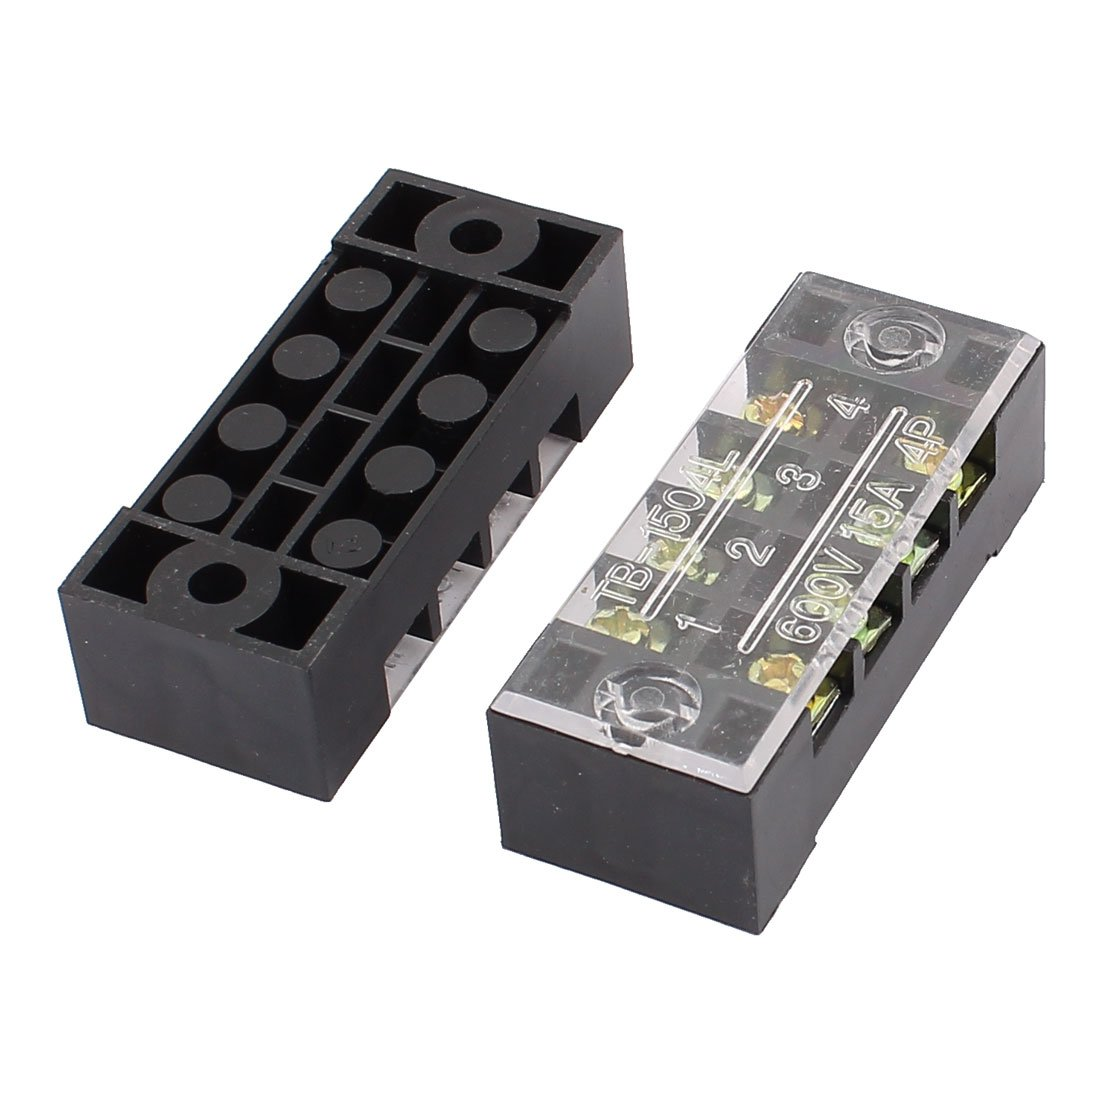 uxcell 10 Pcs 600V 15A 4Position Dual Row Electric Barrier Terminal Block Wire Connector Bar US-SA-AJD-204790